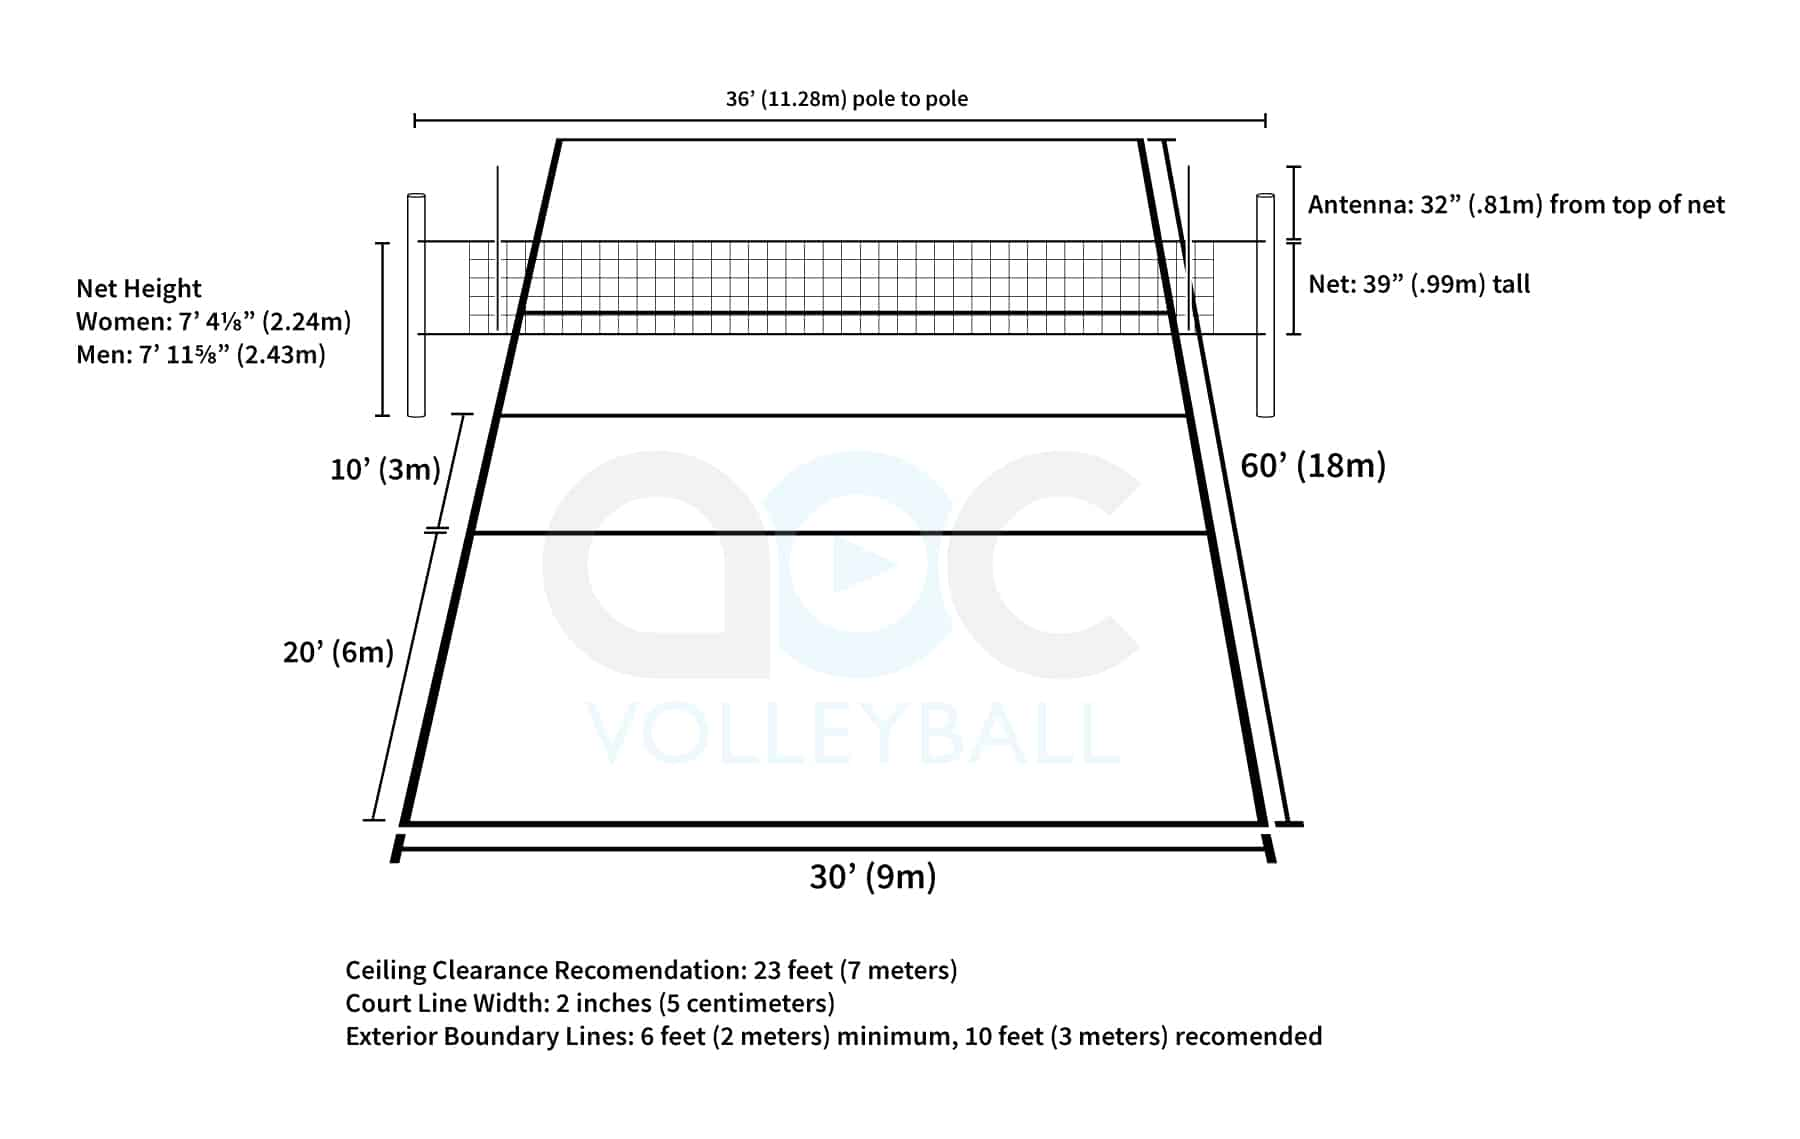 Indoor volleyball court dimensions and measurements